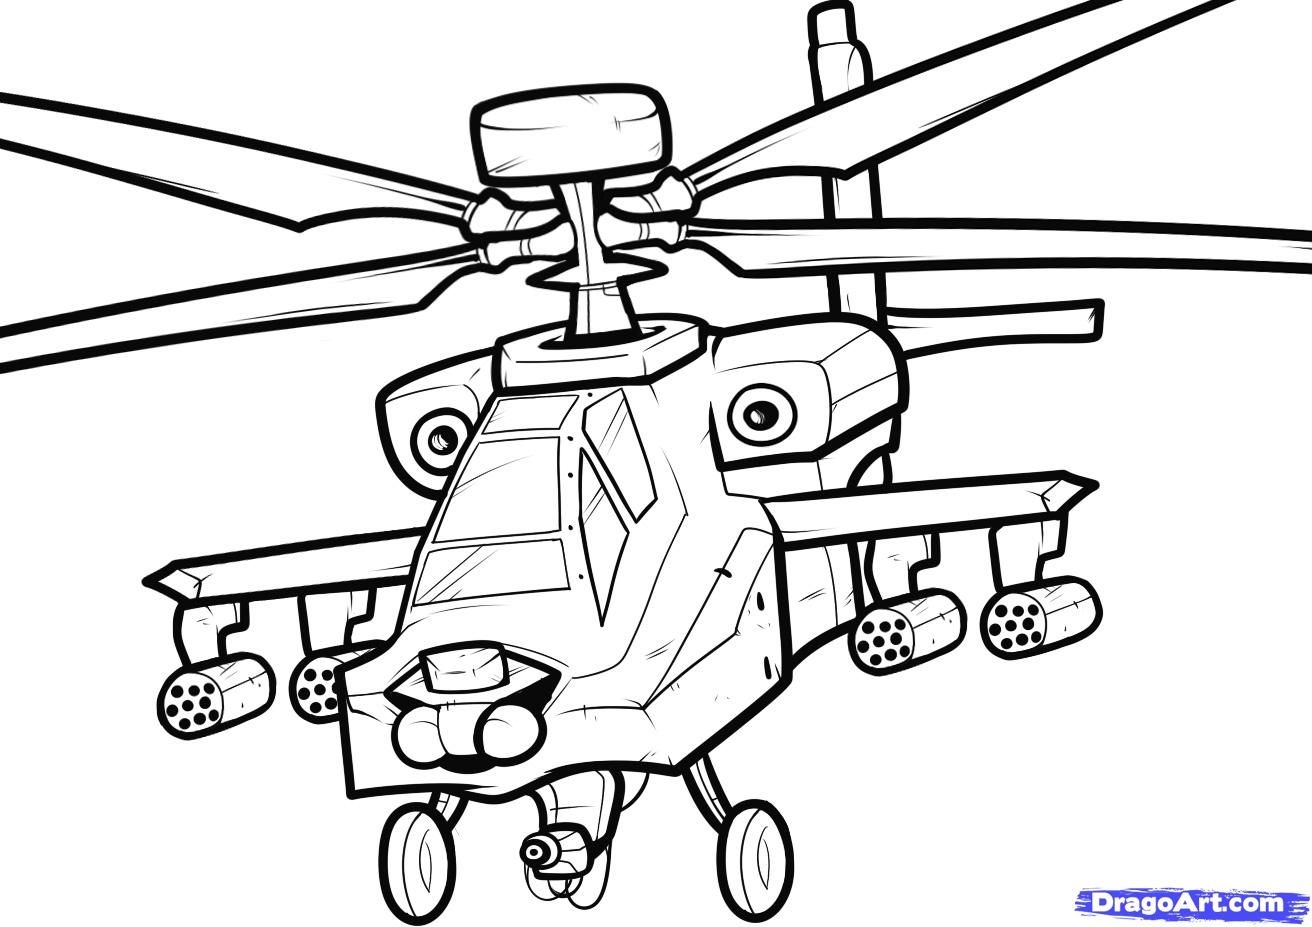 How To Draw An Apache, Apache Helicopter by Dawn